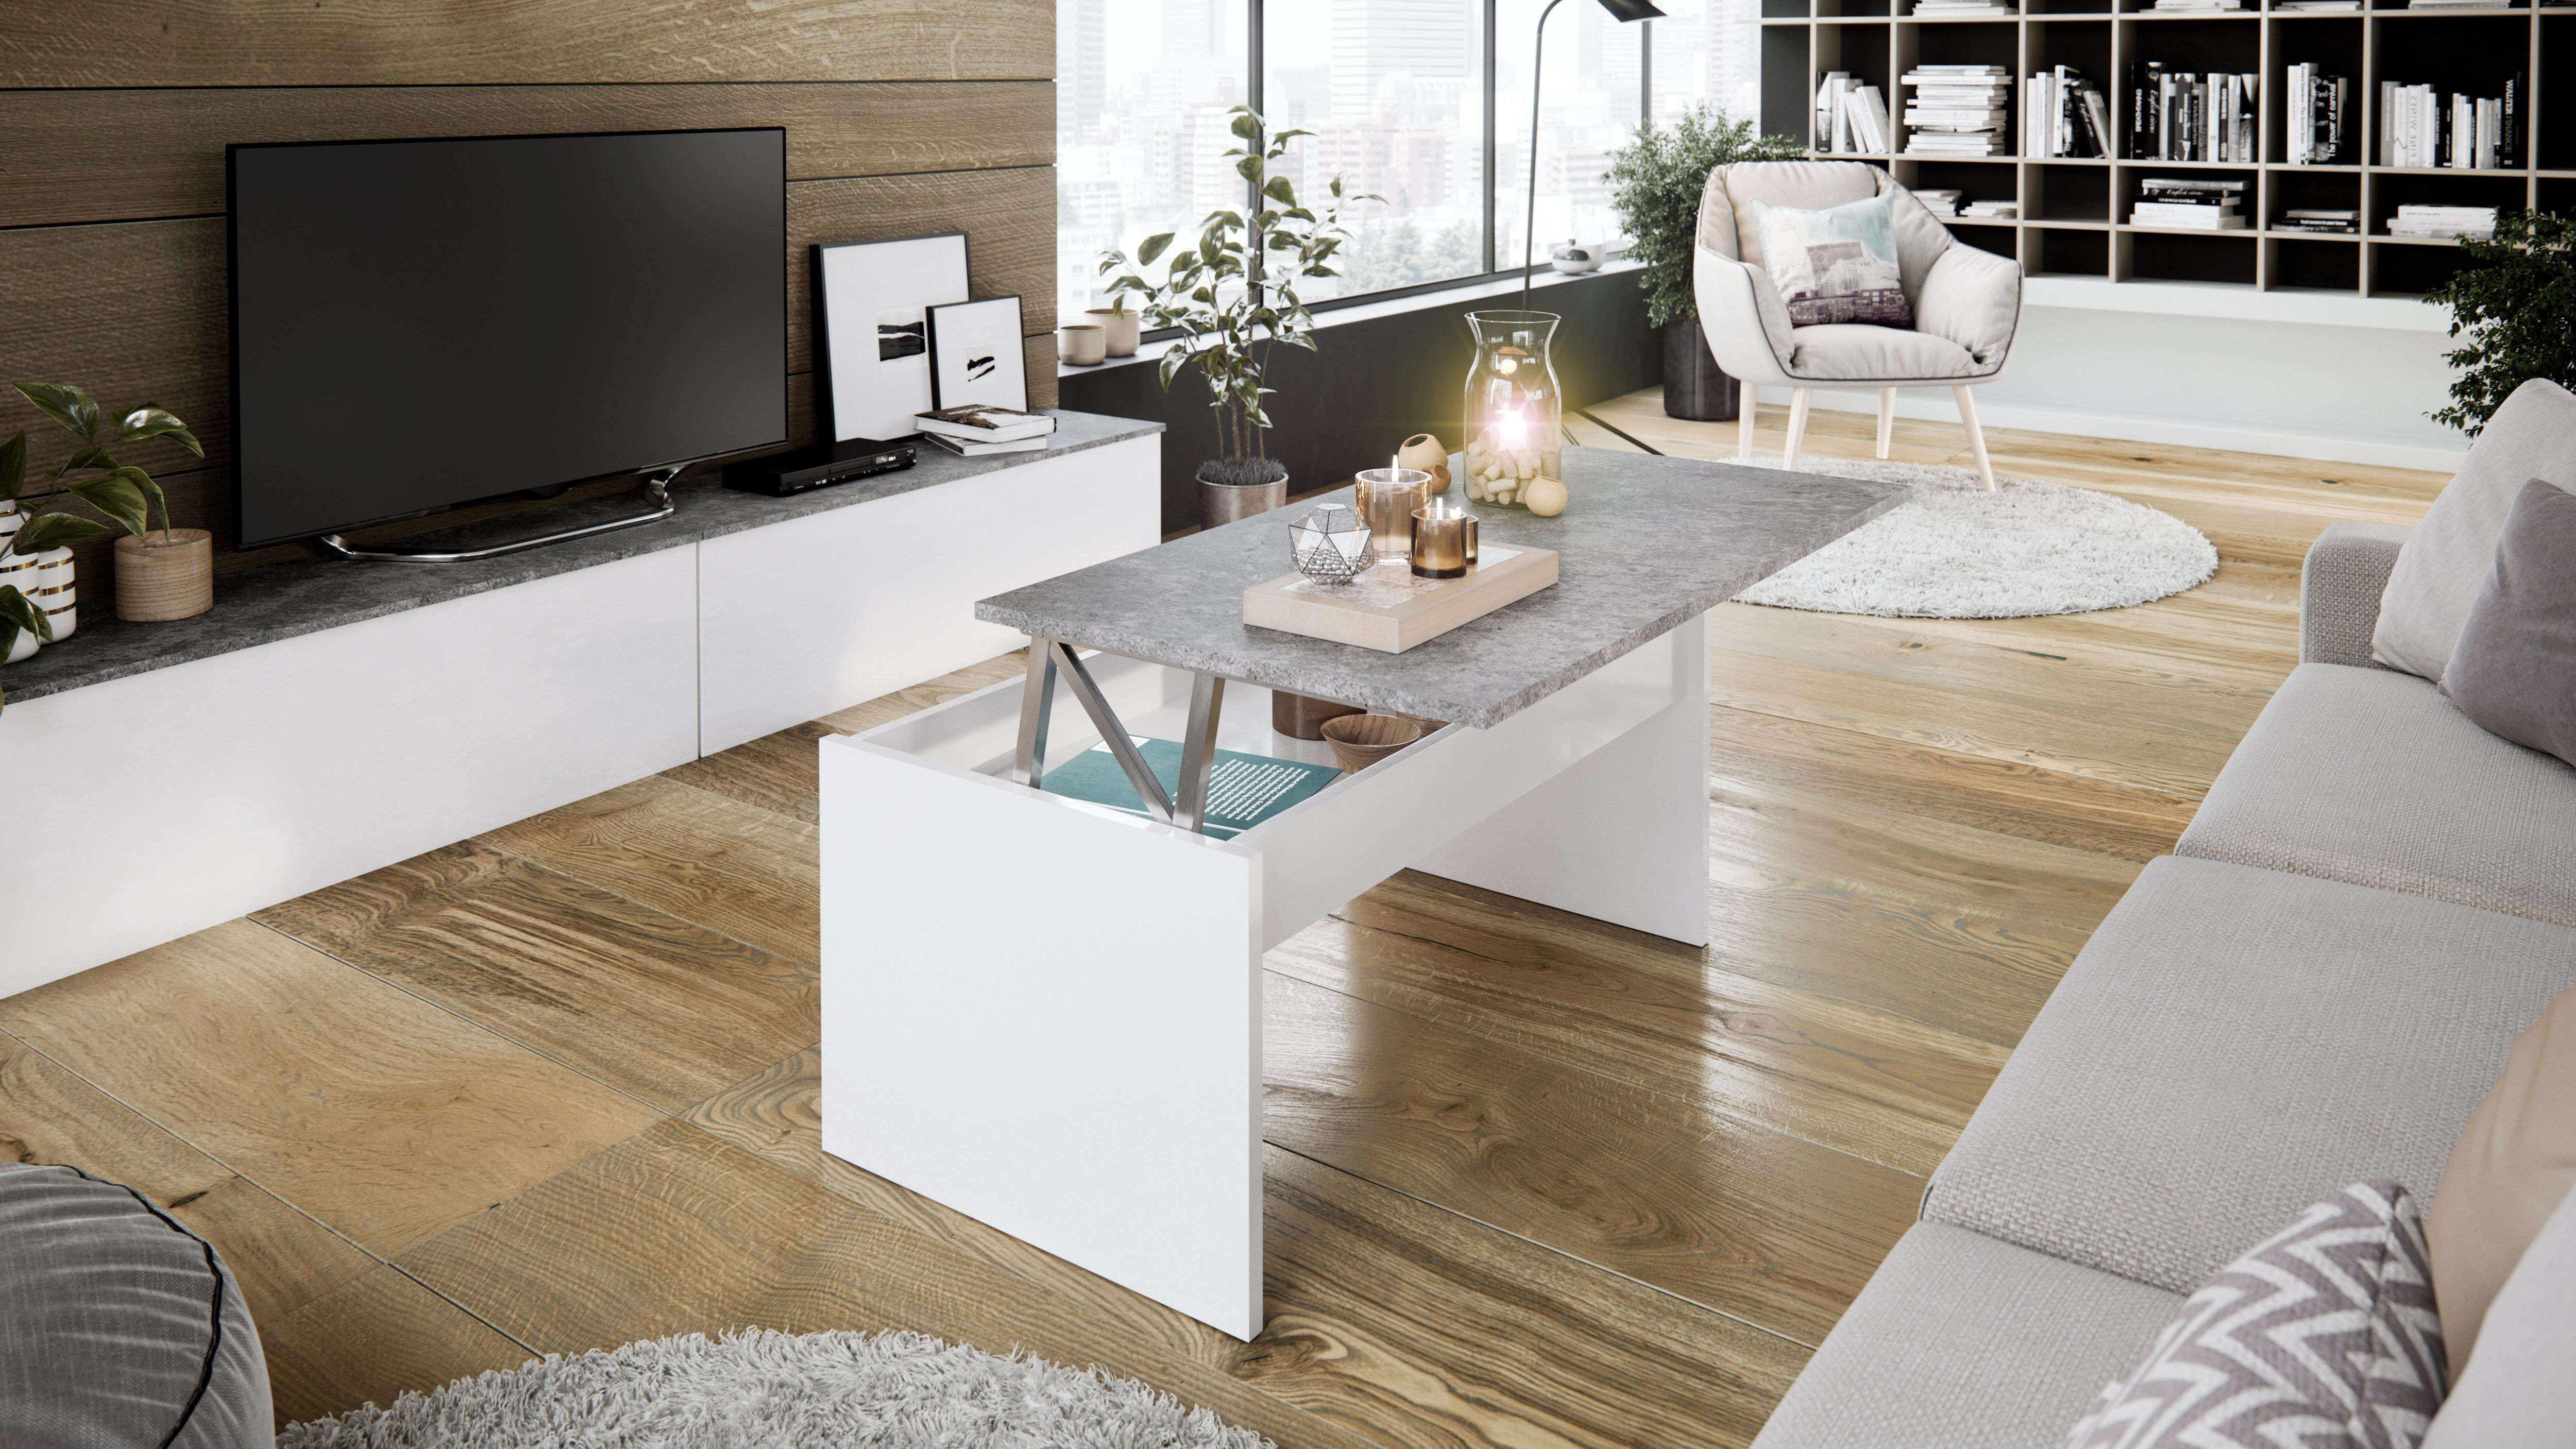 Table Basse Plateau Relevable Yana Blanc Et Imitation Beton Table Basse Plateau Table Basse Maison